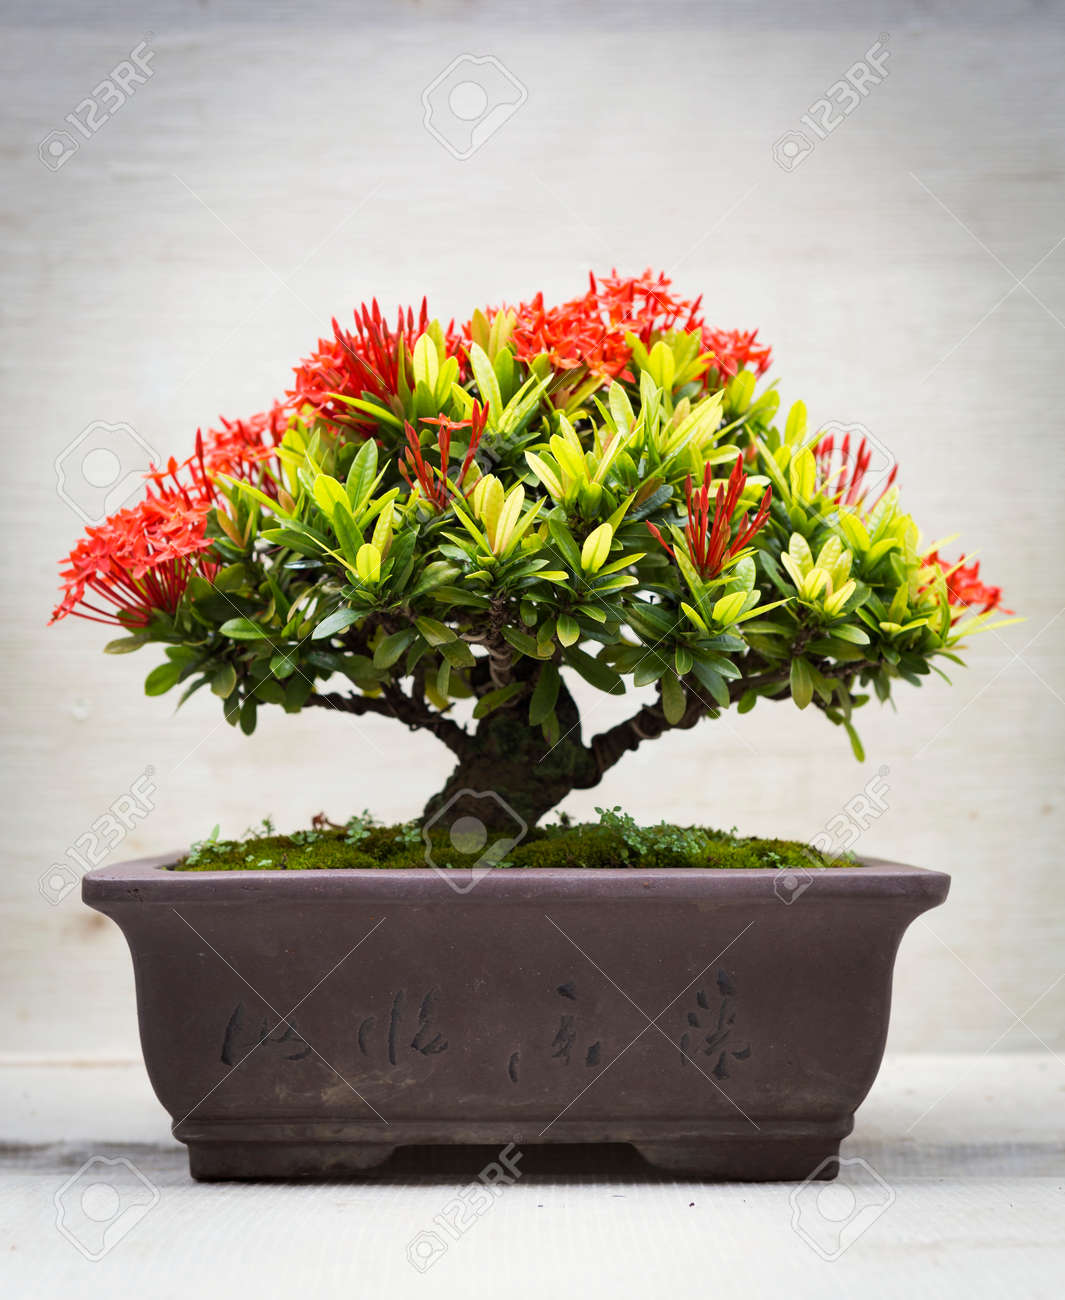 Ixora Bonsai In Clay Pot Stock Photo Picture And Royalty Free Image Image 74206399